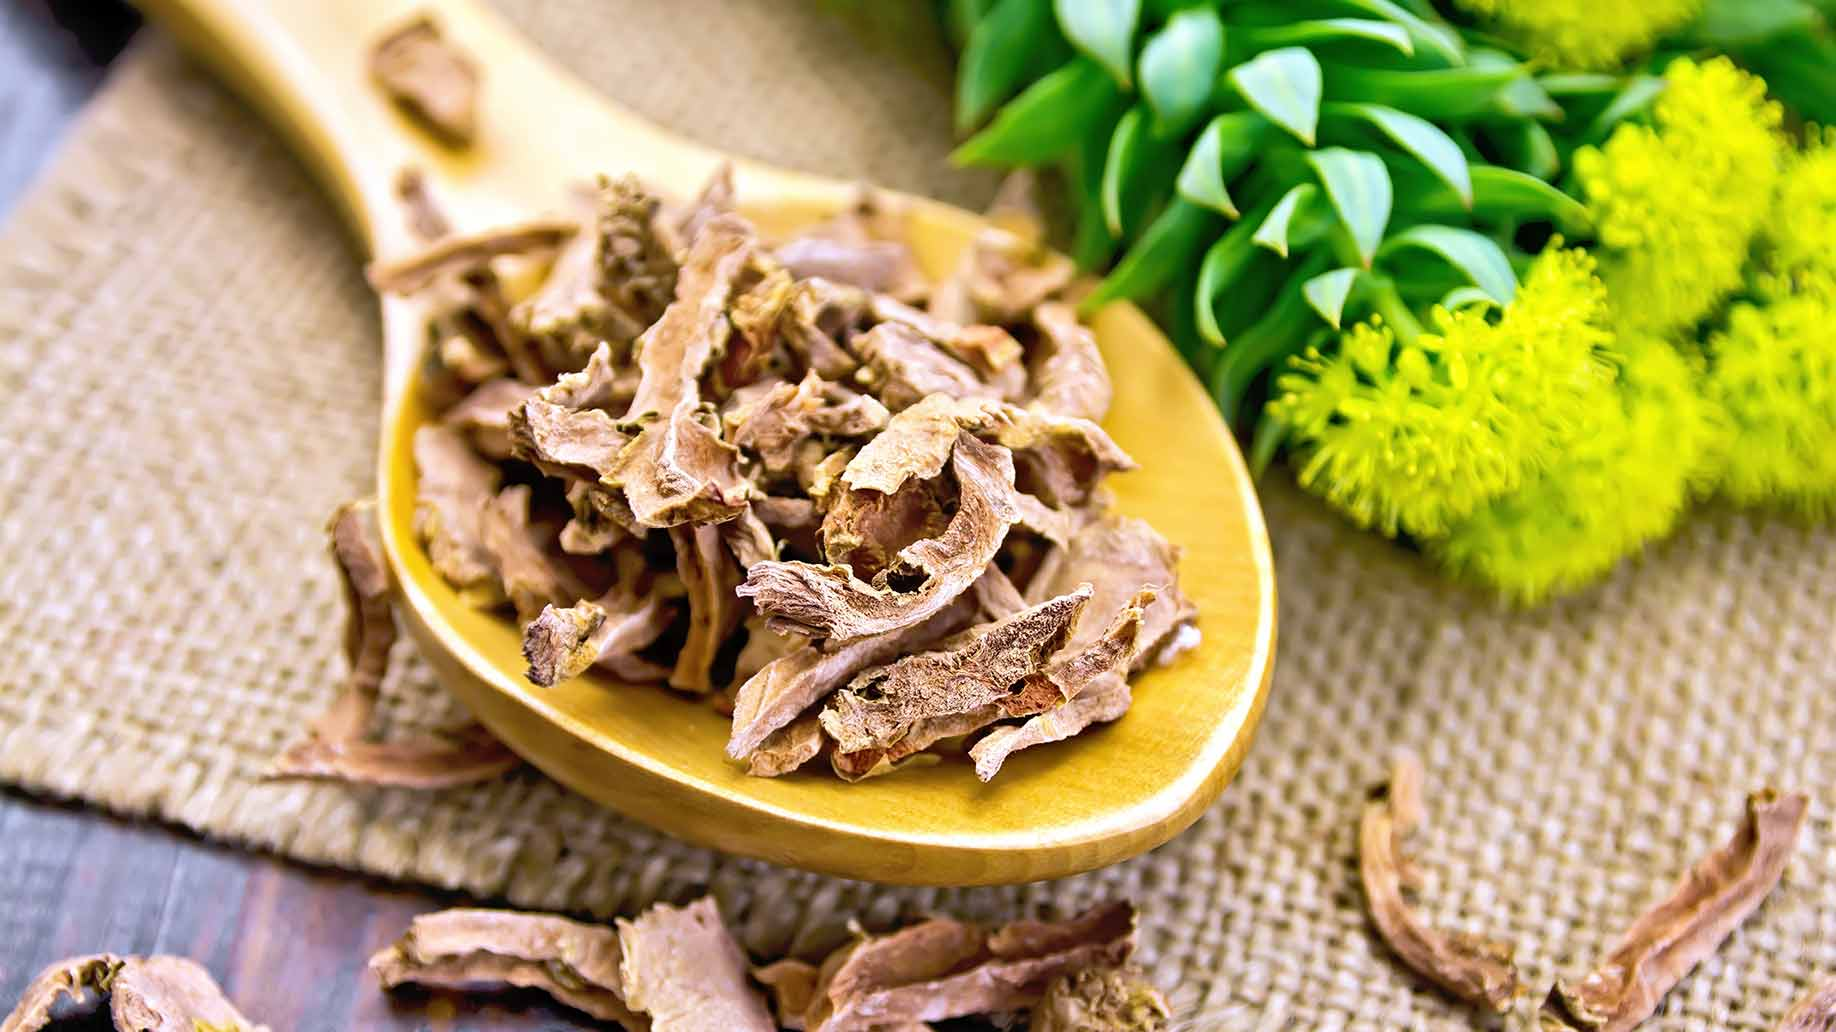 rhodiola rosea increase boost energy levels natural remedies.